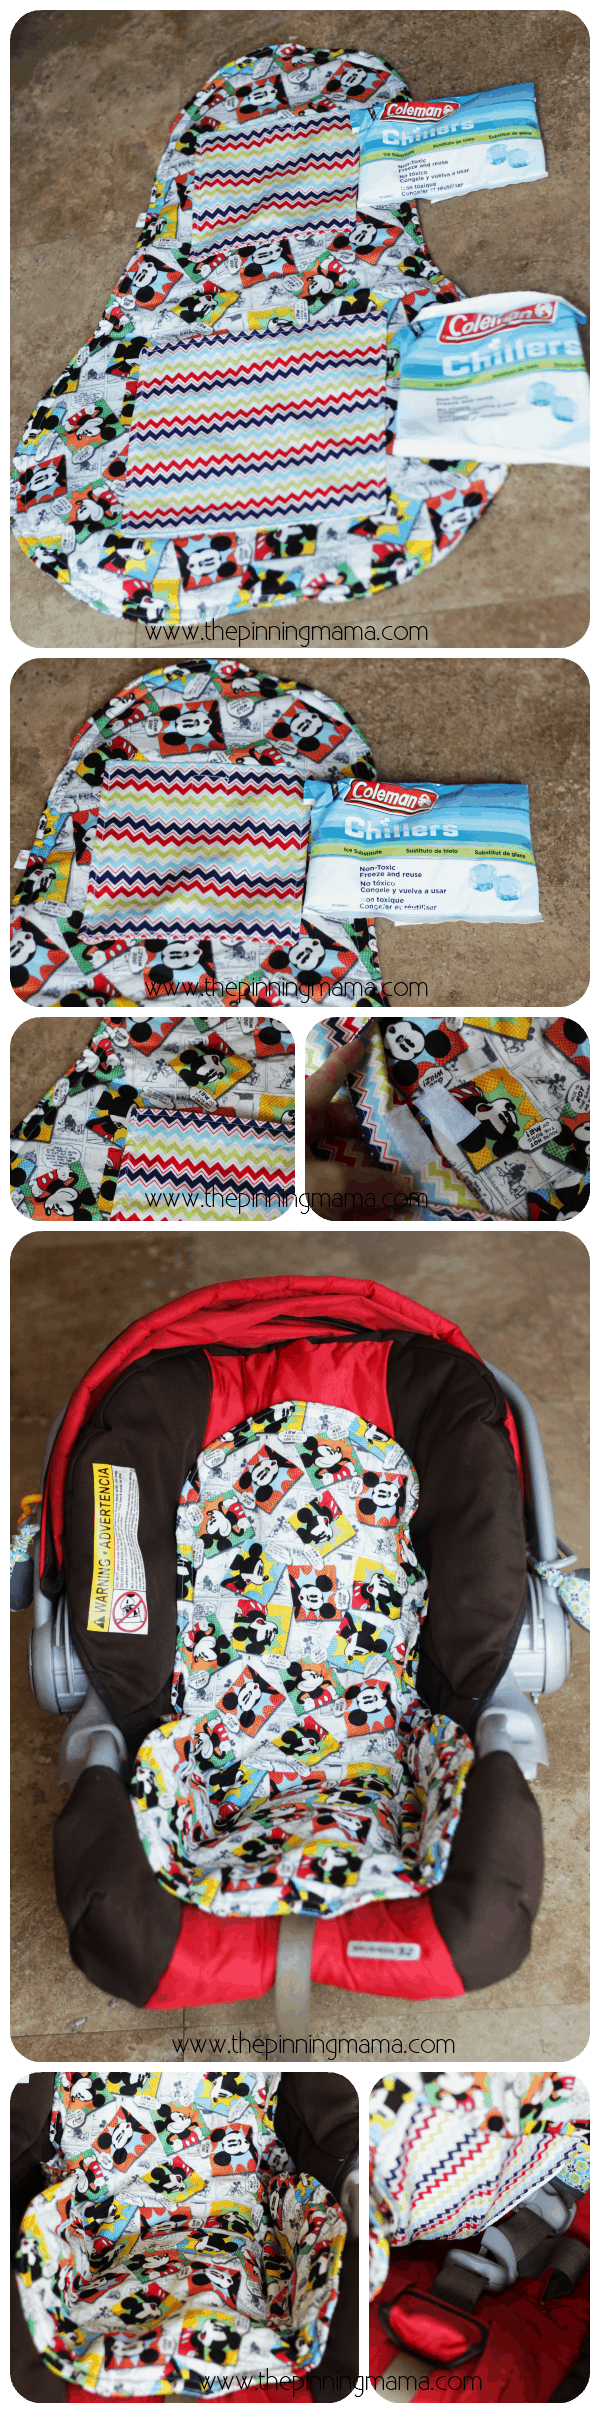 Babybug Creations car seat cooler